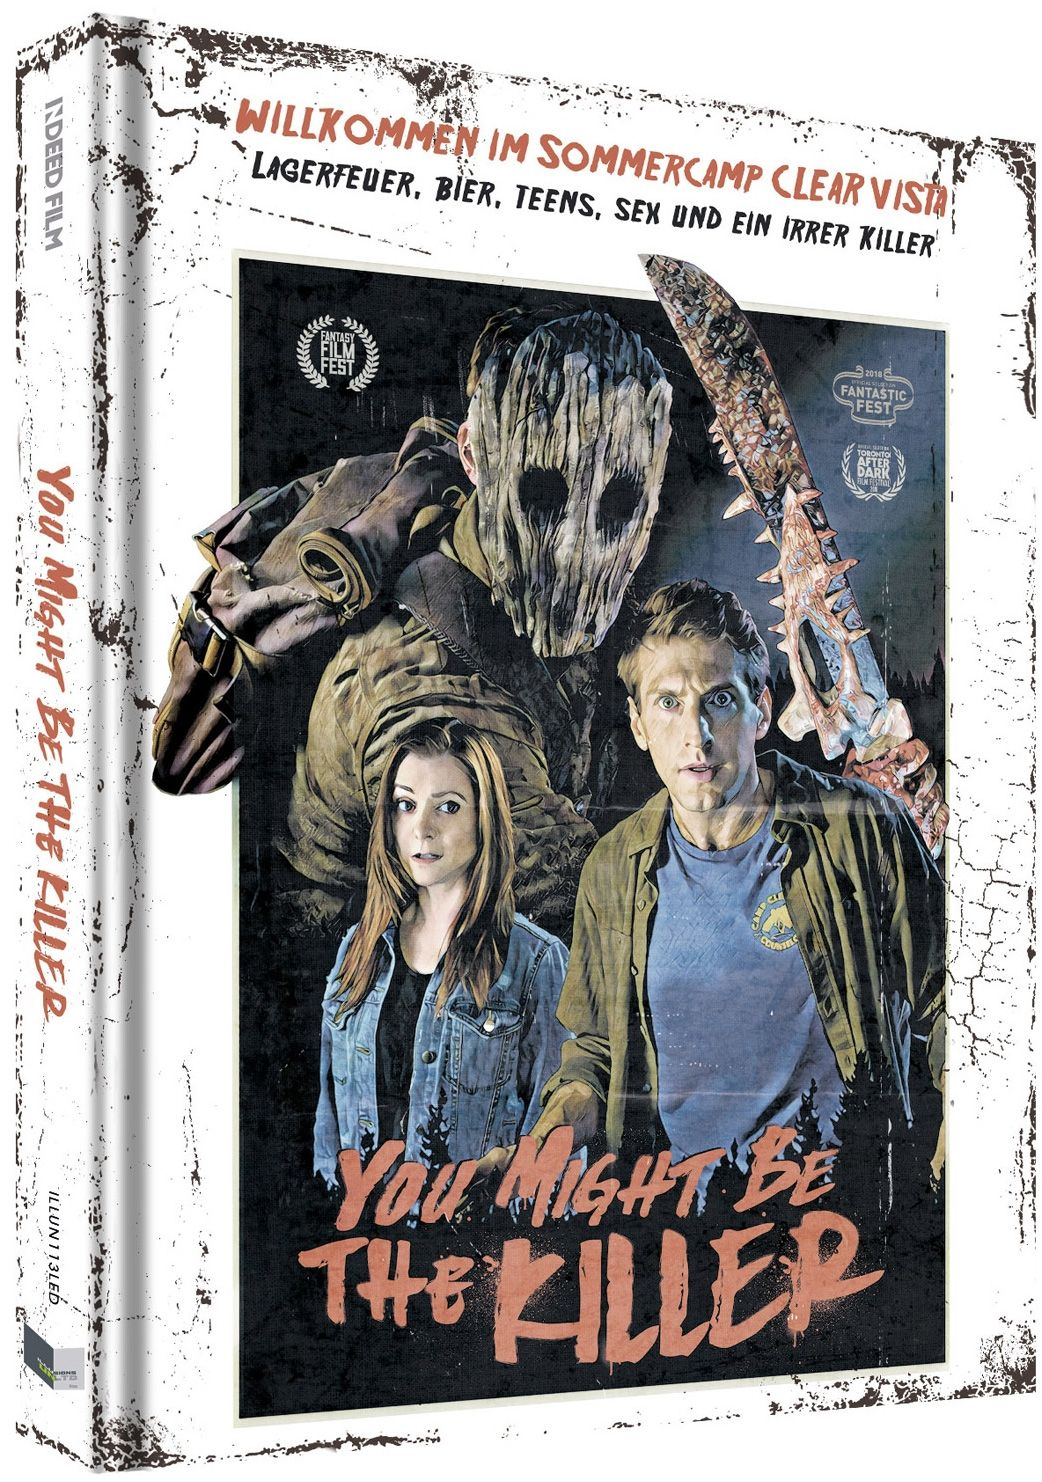 You Might Be the Killer (Lim. Uncut Mediabook - Cover D) (DVD + BLURAY)